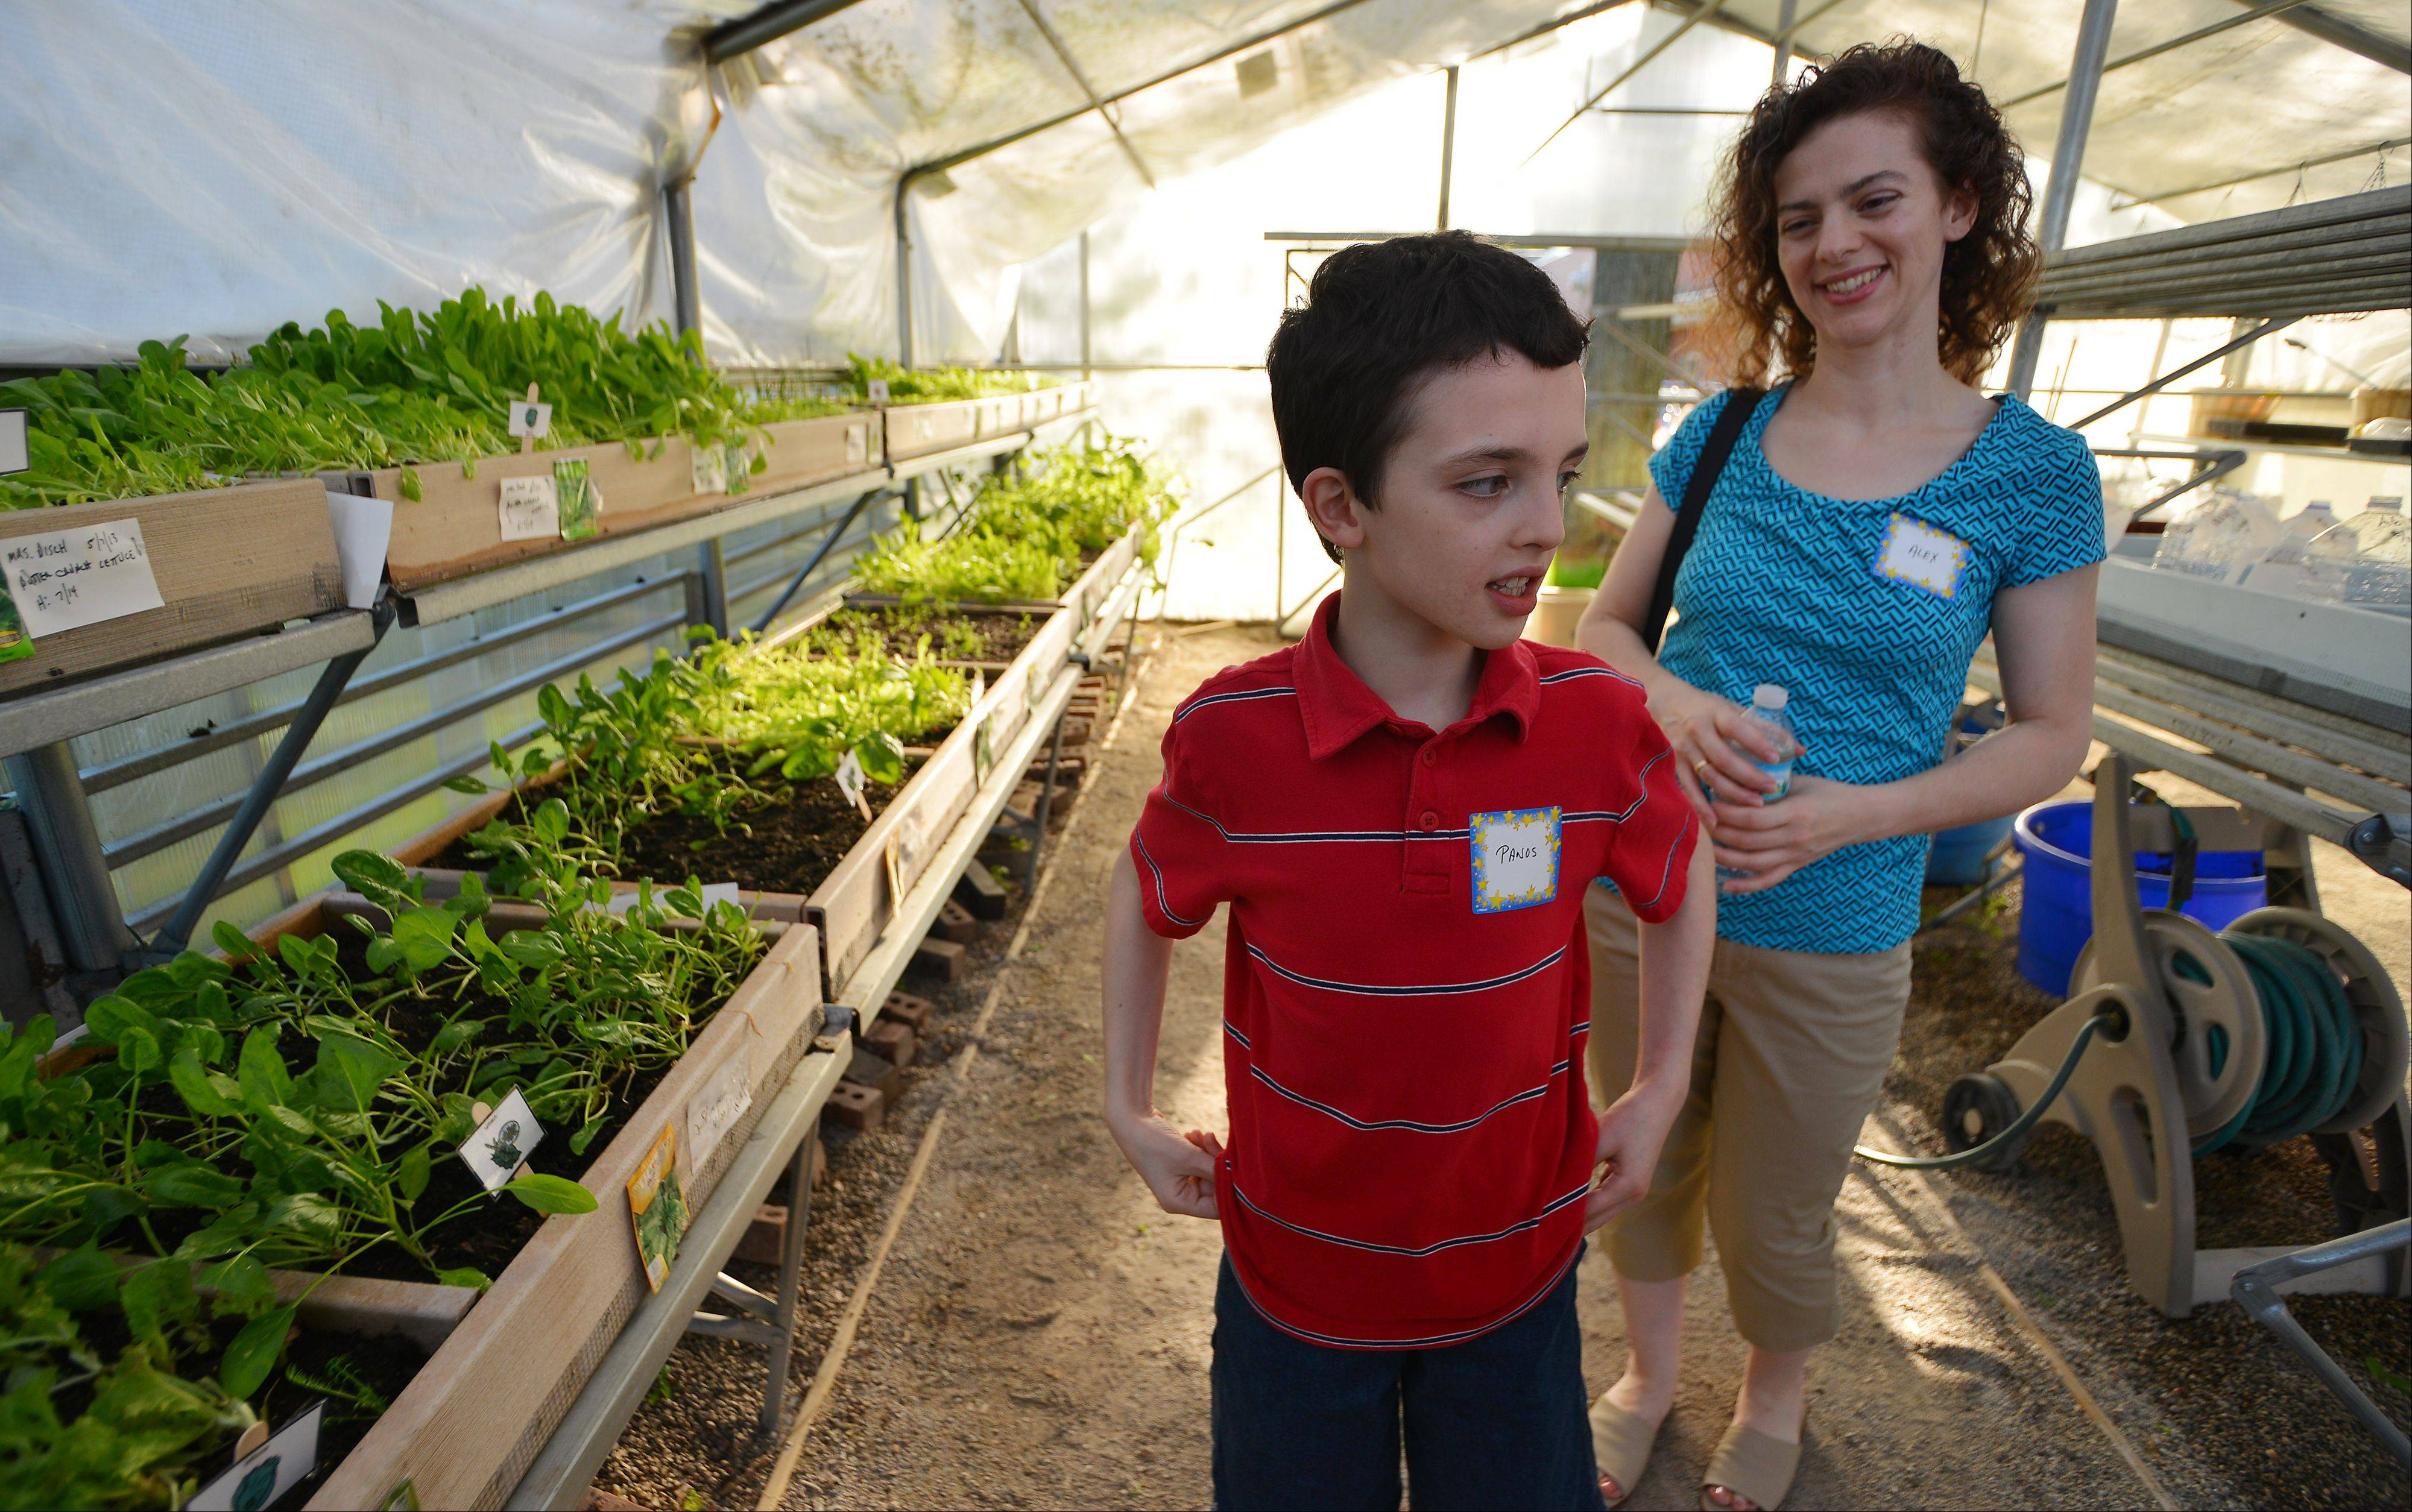 Panos Calderaro, 10, of Arlington Heights takes a tour of the greenhouse with his mom Alex as part of the recognition event for Northwest Suburban Special Education Organization�s �Shining Stars� at Miner School in Arlington Heights.